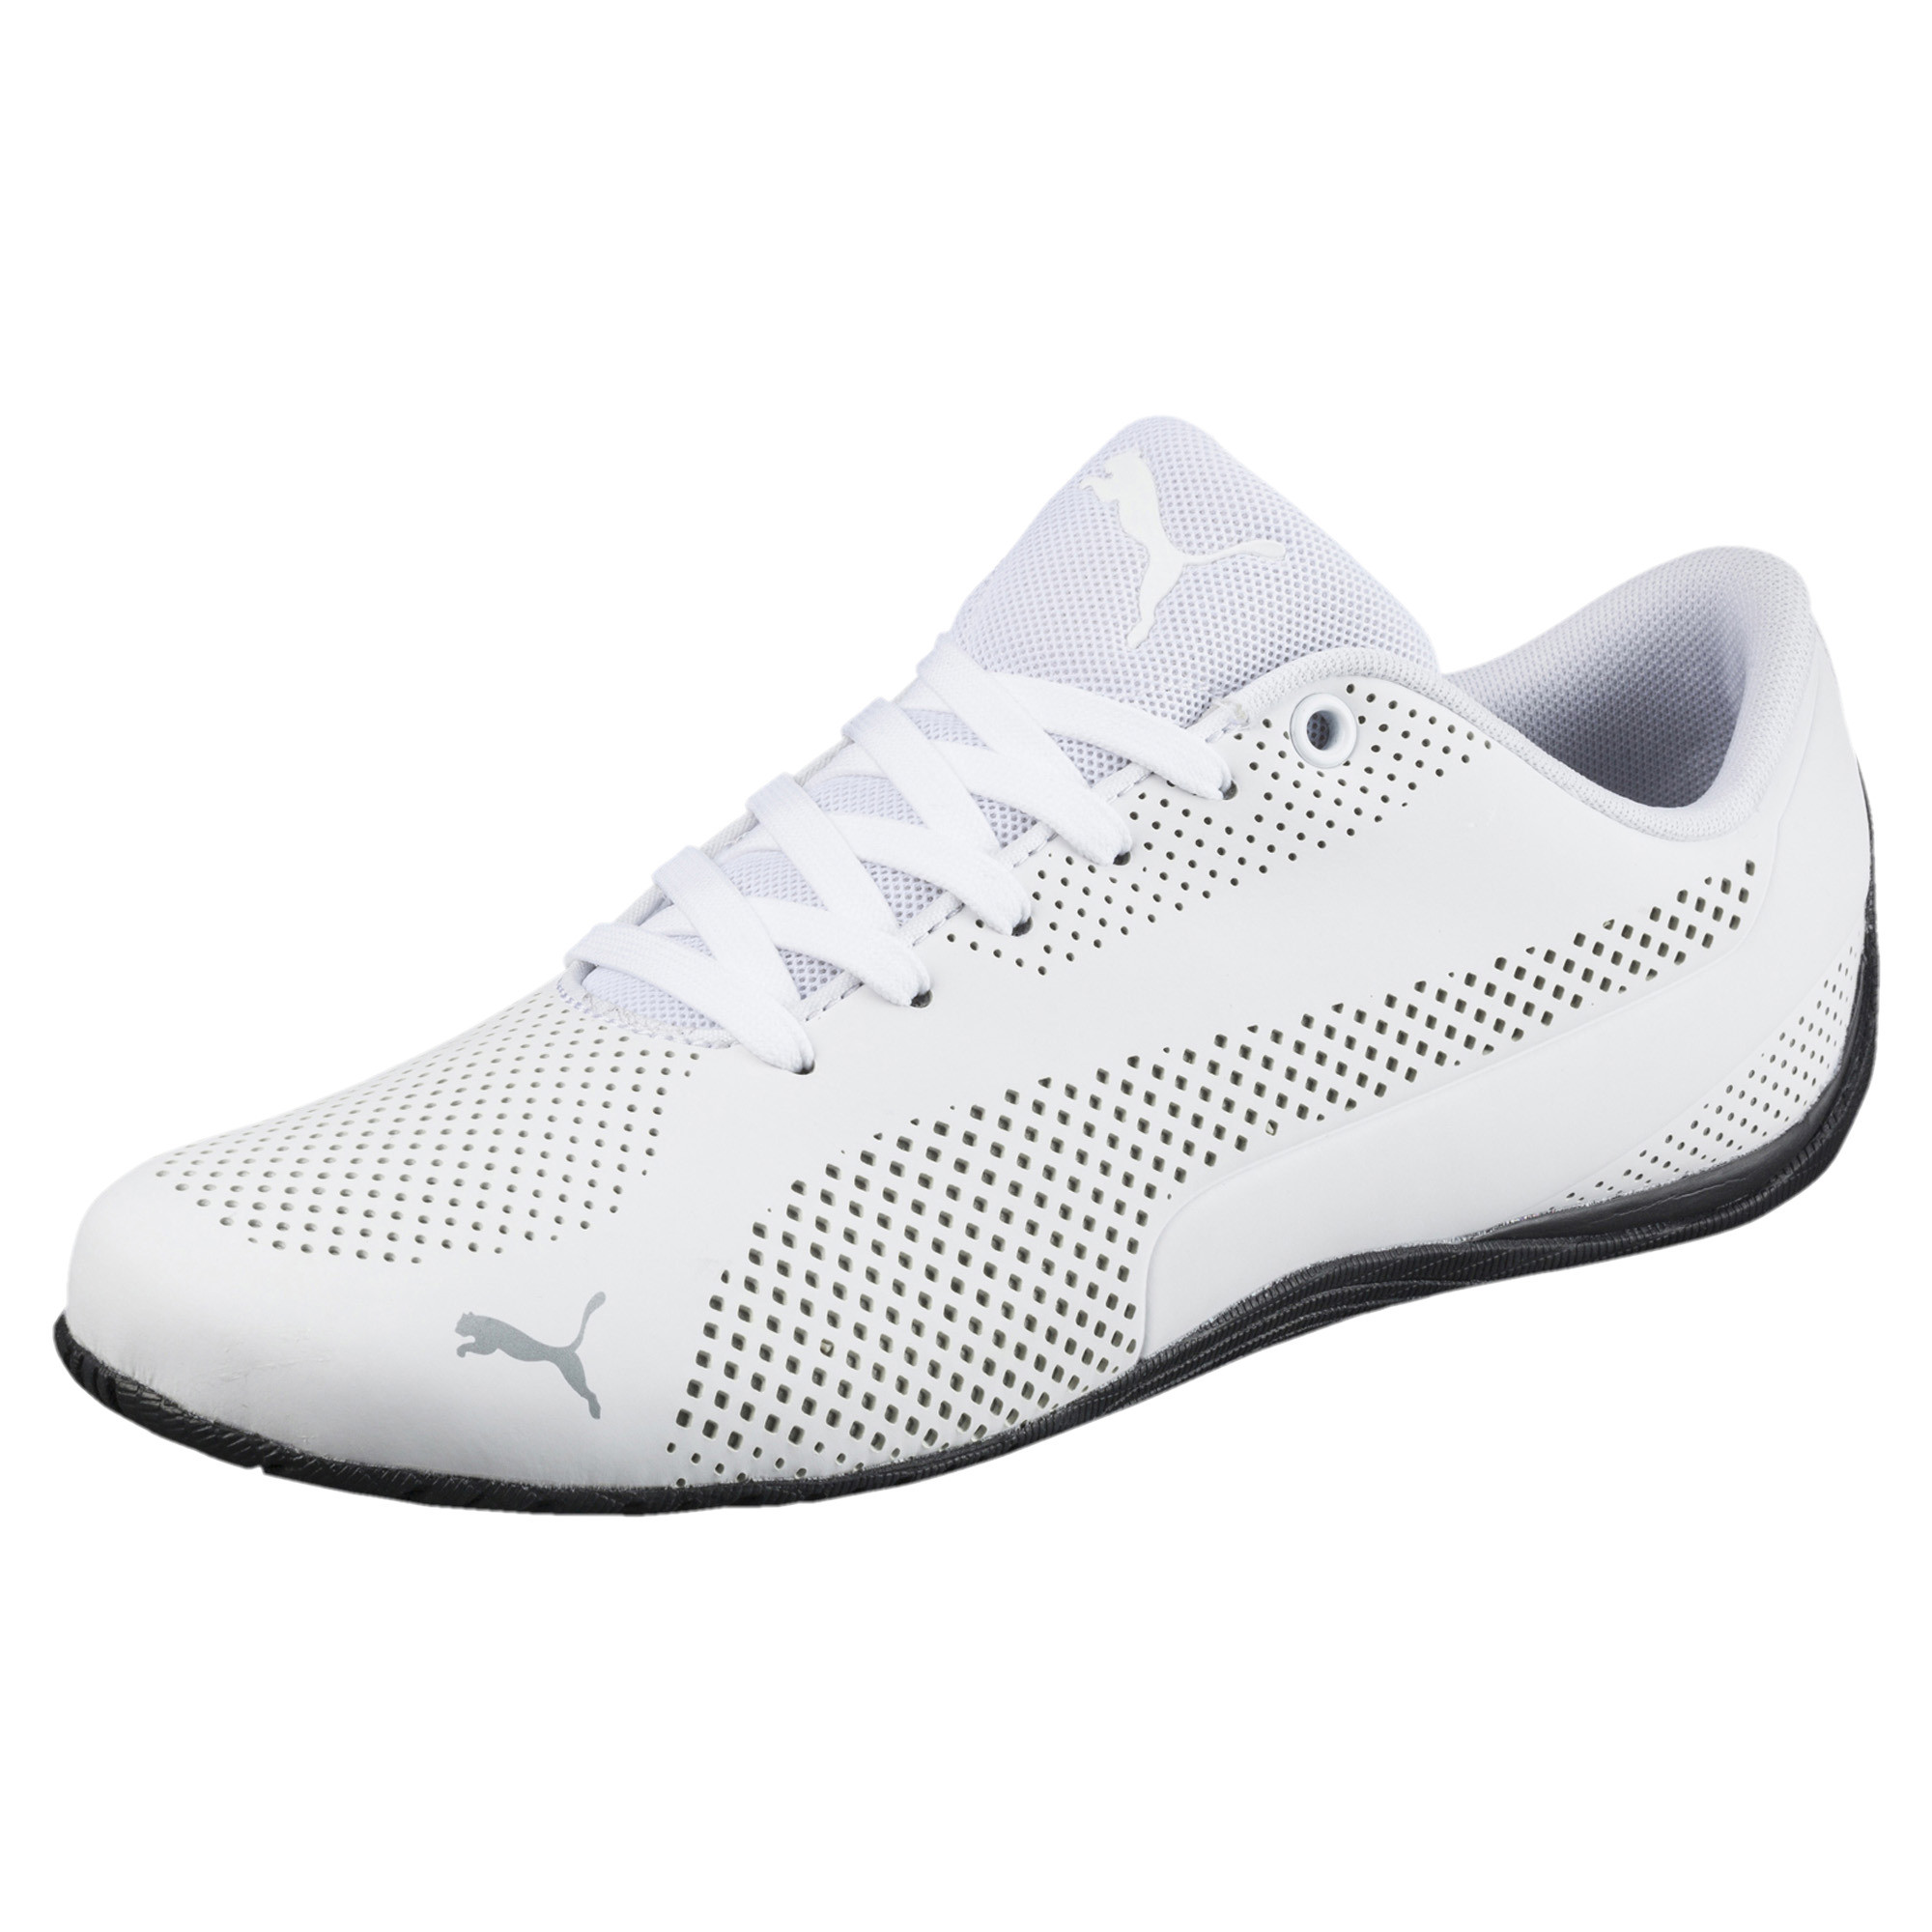 PUMA-Drift-Cat-Ultra-Reflective-Men-039-s-Shoes-Men-Shoe-Sport-Classics miniatura 14